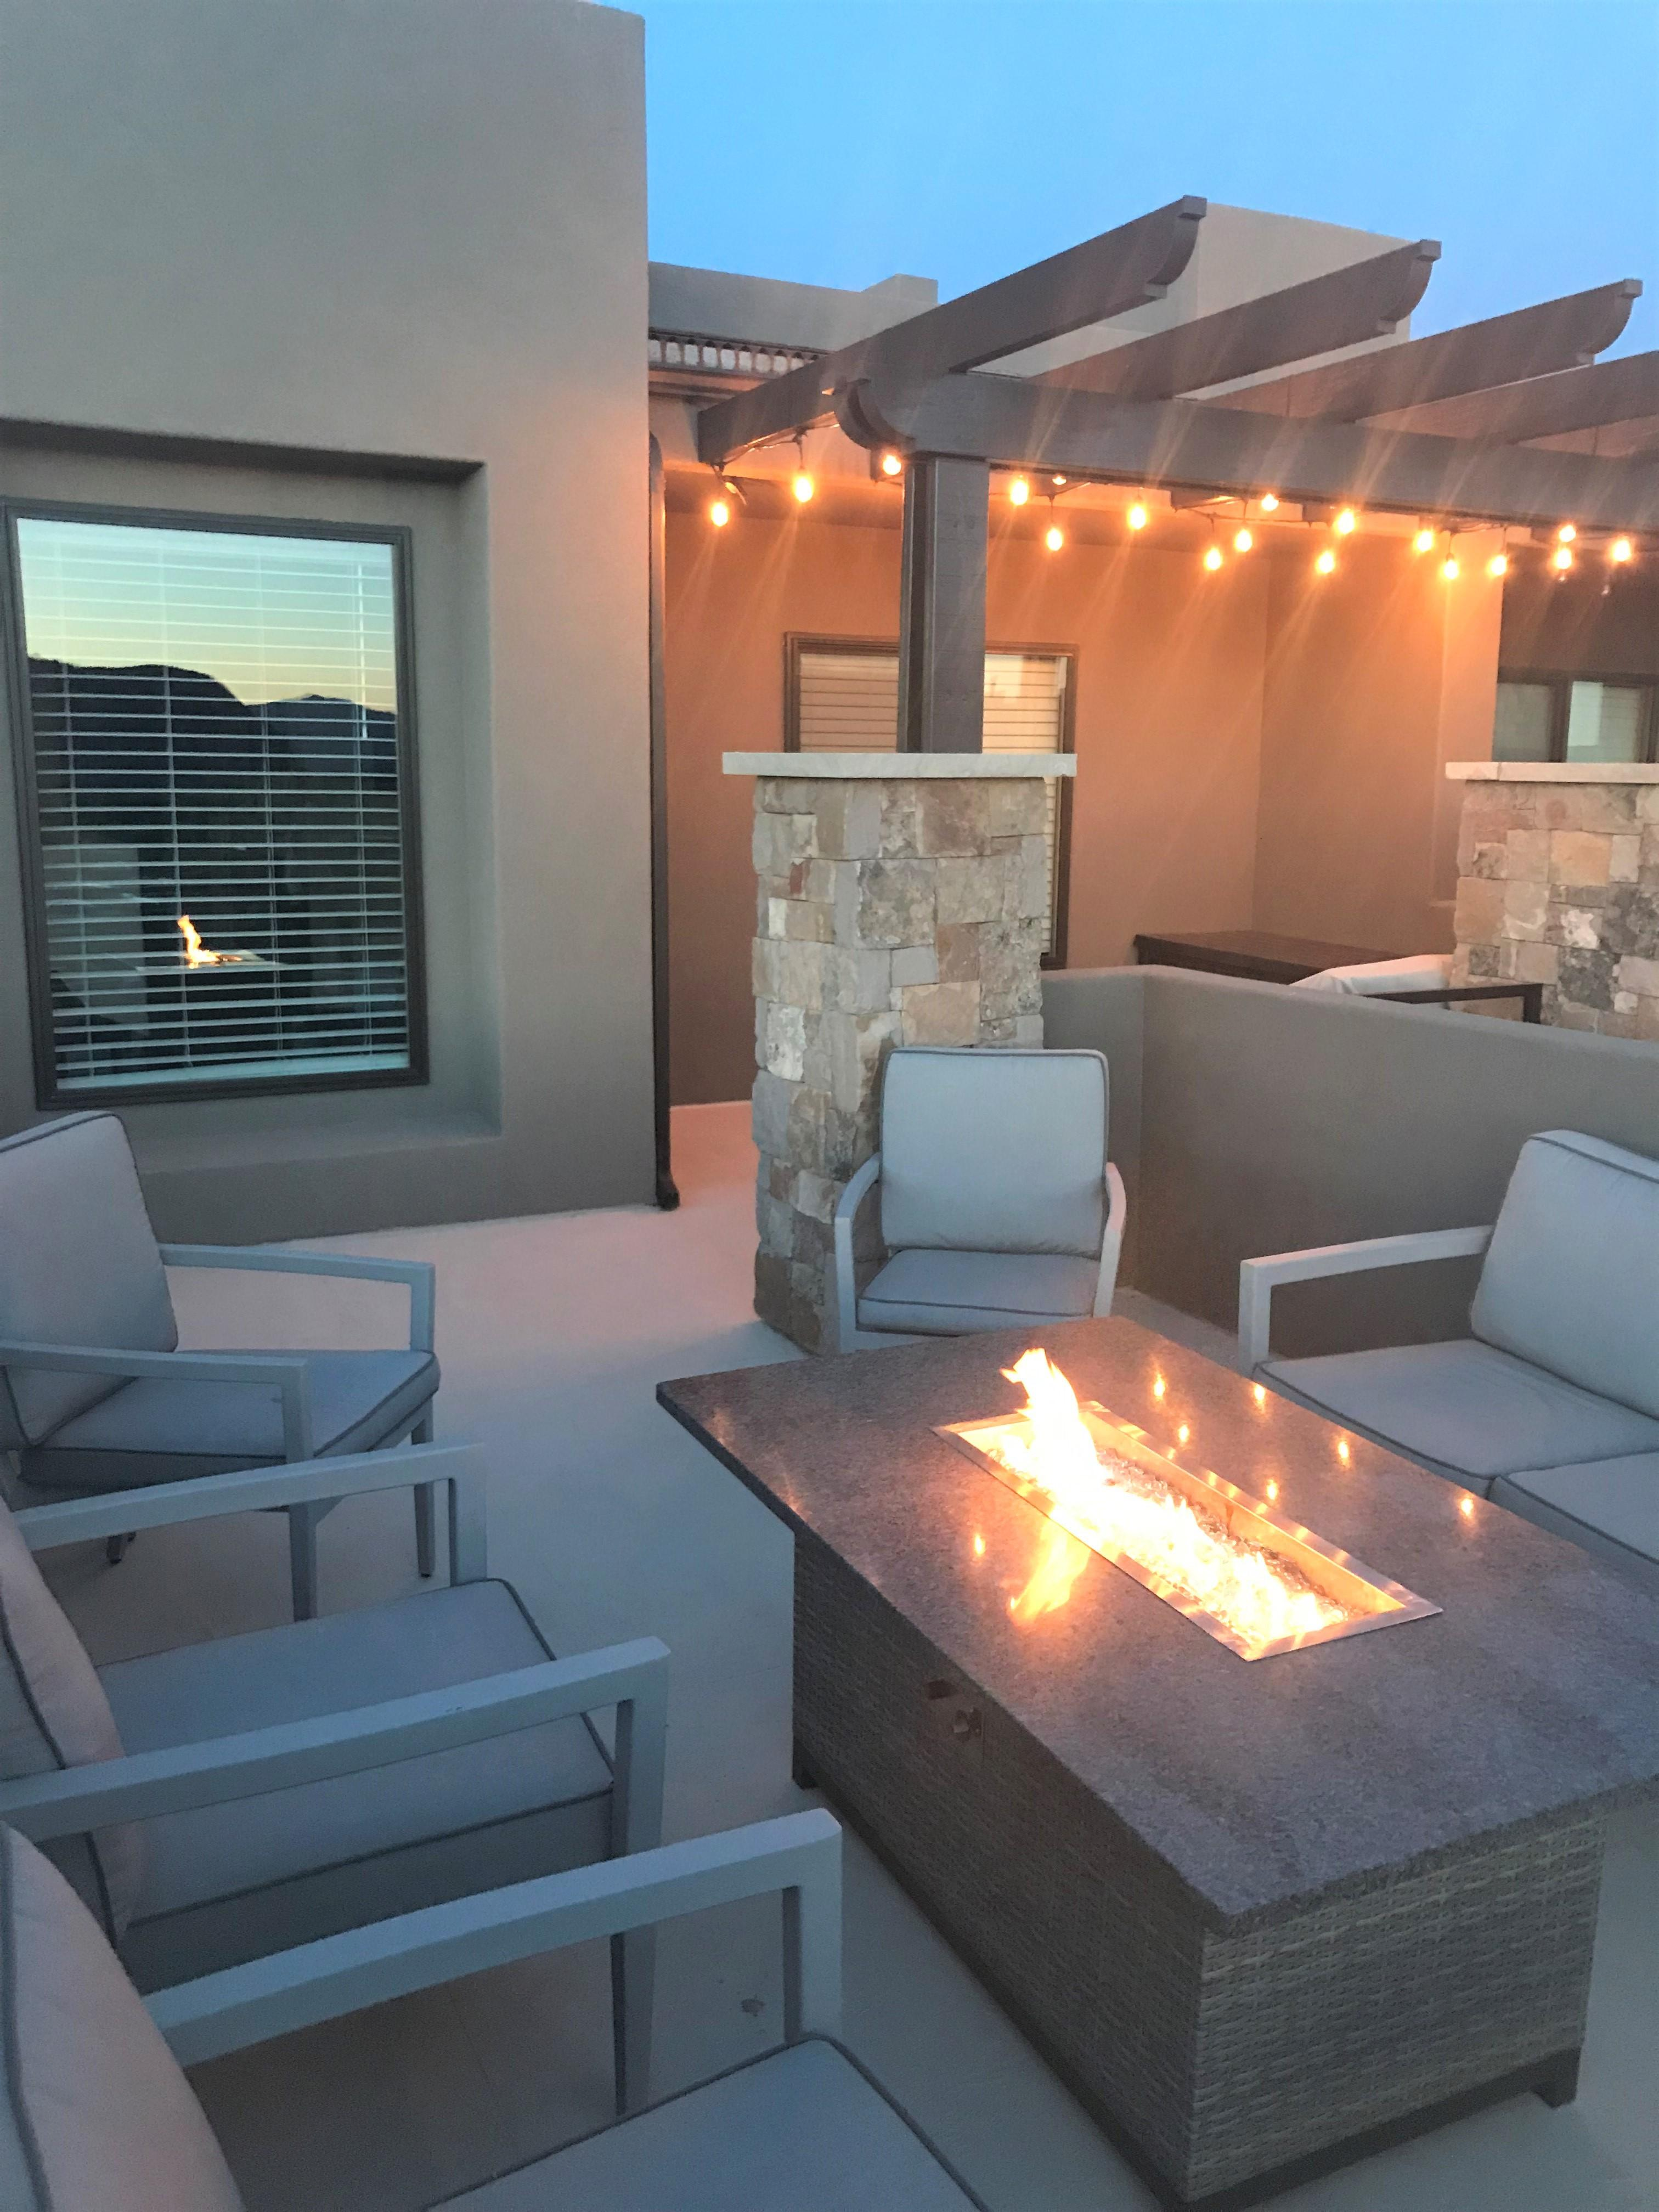 Enjoy a stunning sunset or sunrise from the front patio while sitting around our cozy outdoor firepit.